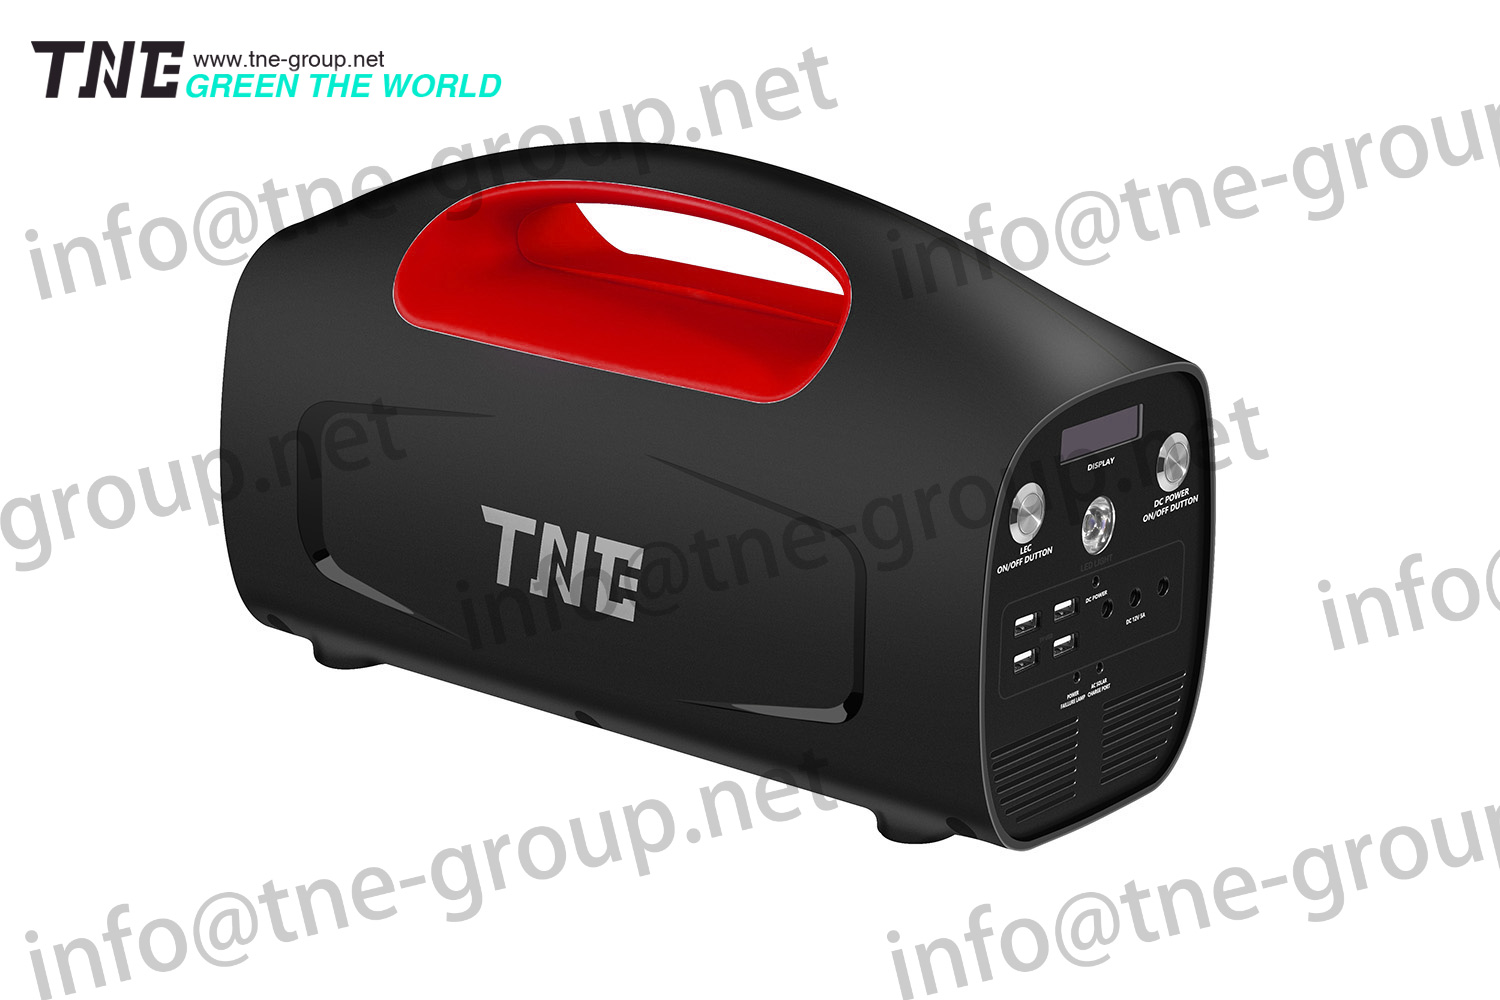 TNE High Quality Solar Power Station For Outdoor UPS With 12V 9Ah Battery